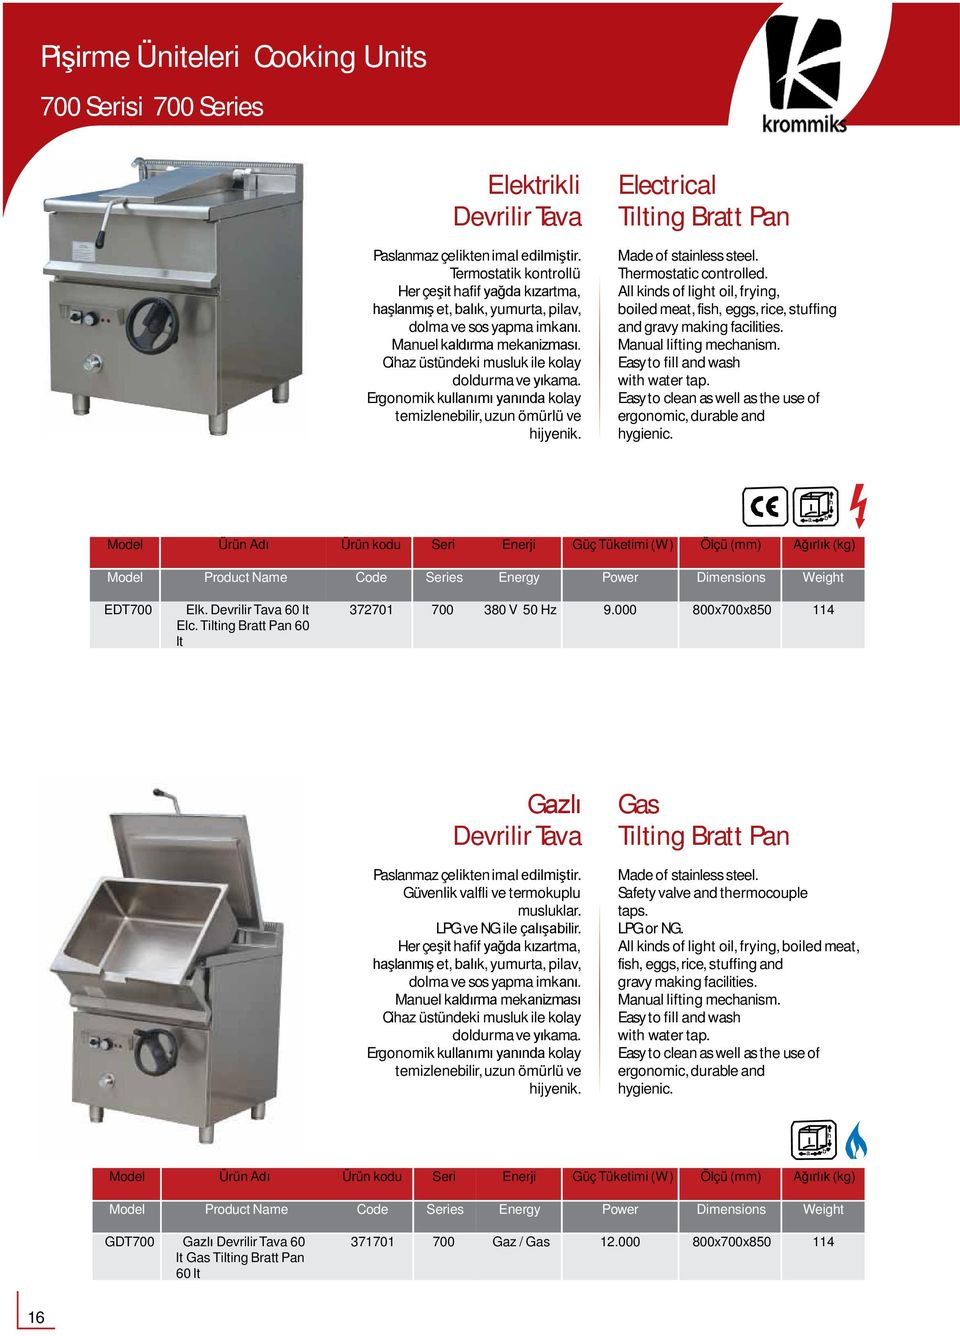 Electrical Tilting Bratt Pan Thermostatic controlled. All kinds of light oil, frying, boiled meat, fish, eggs,rice, stuffing and gravy makingfacilities. Manual liftingmechanism.